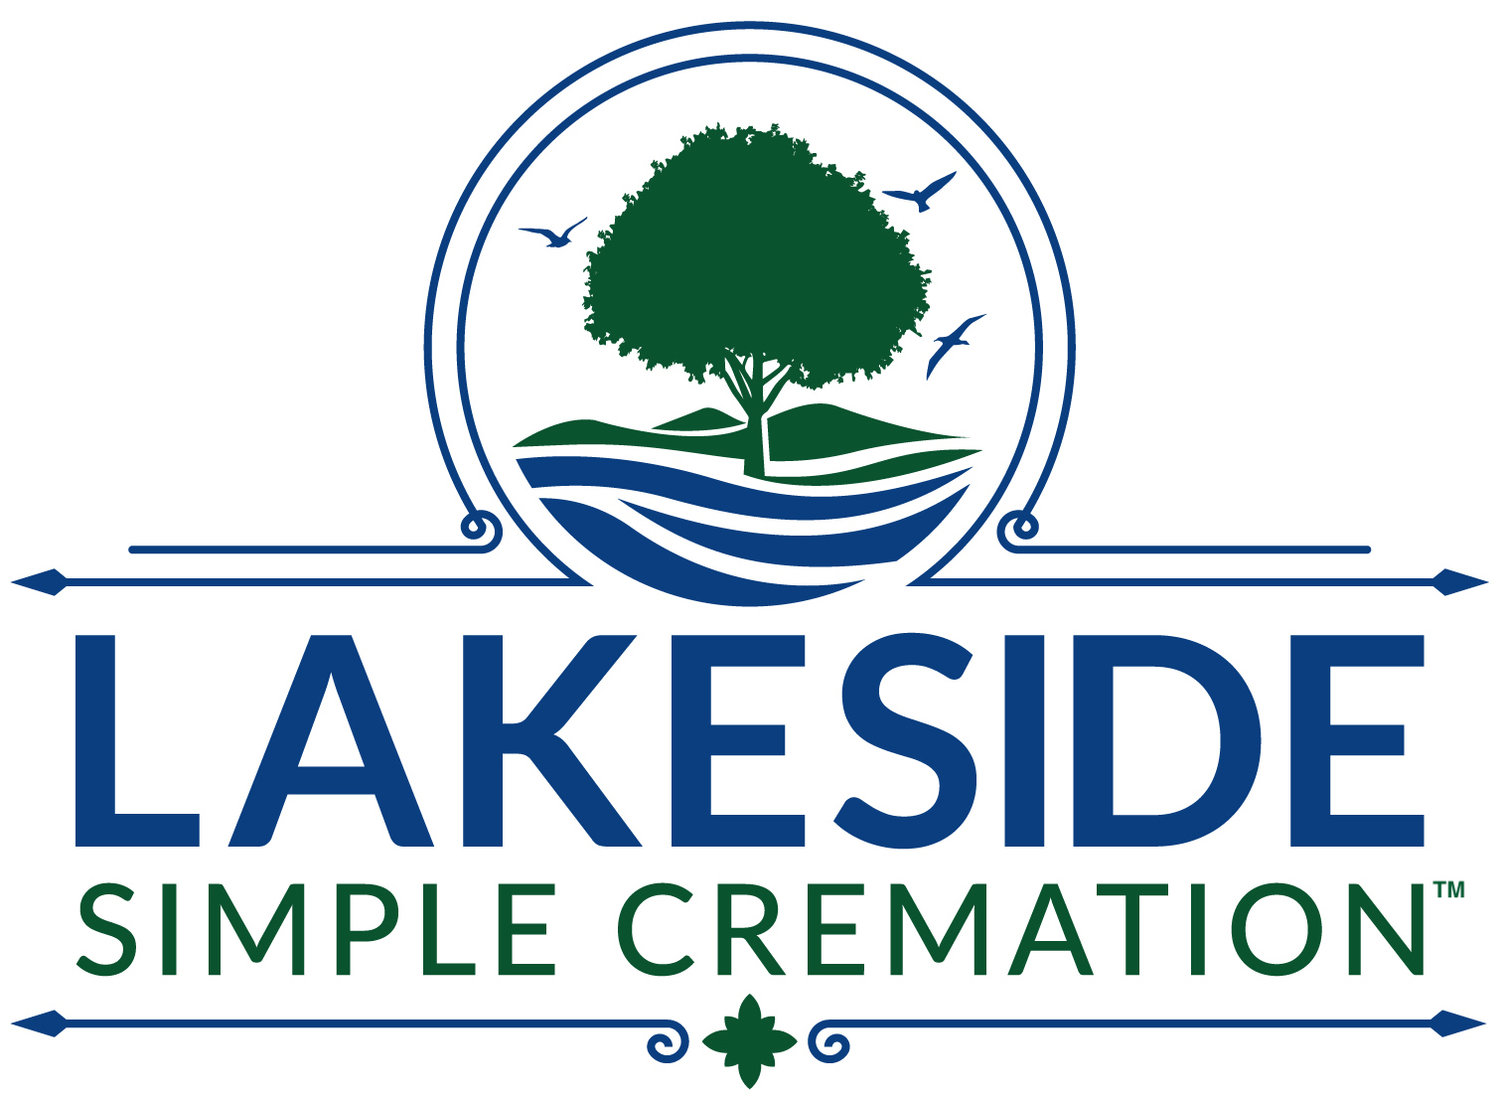 Lakeside Simple Cremation